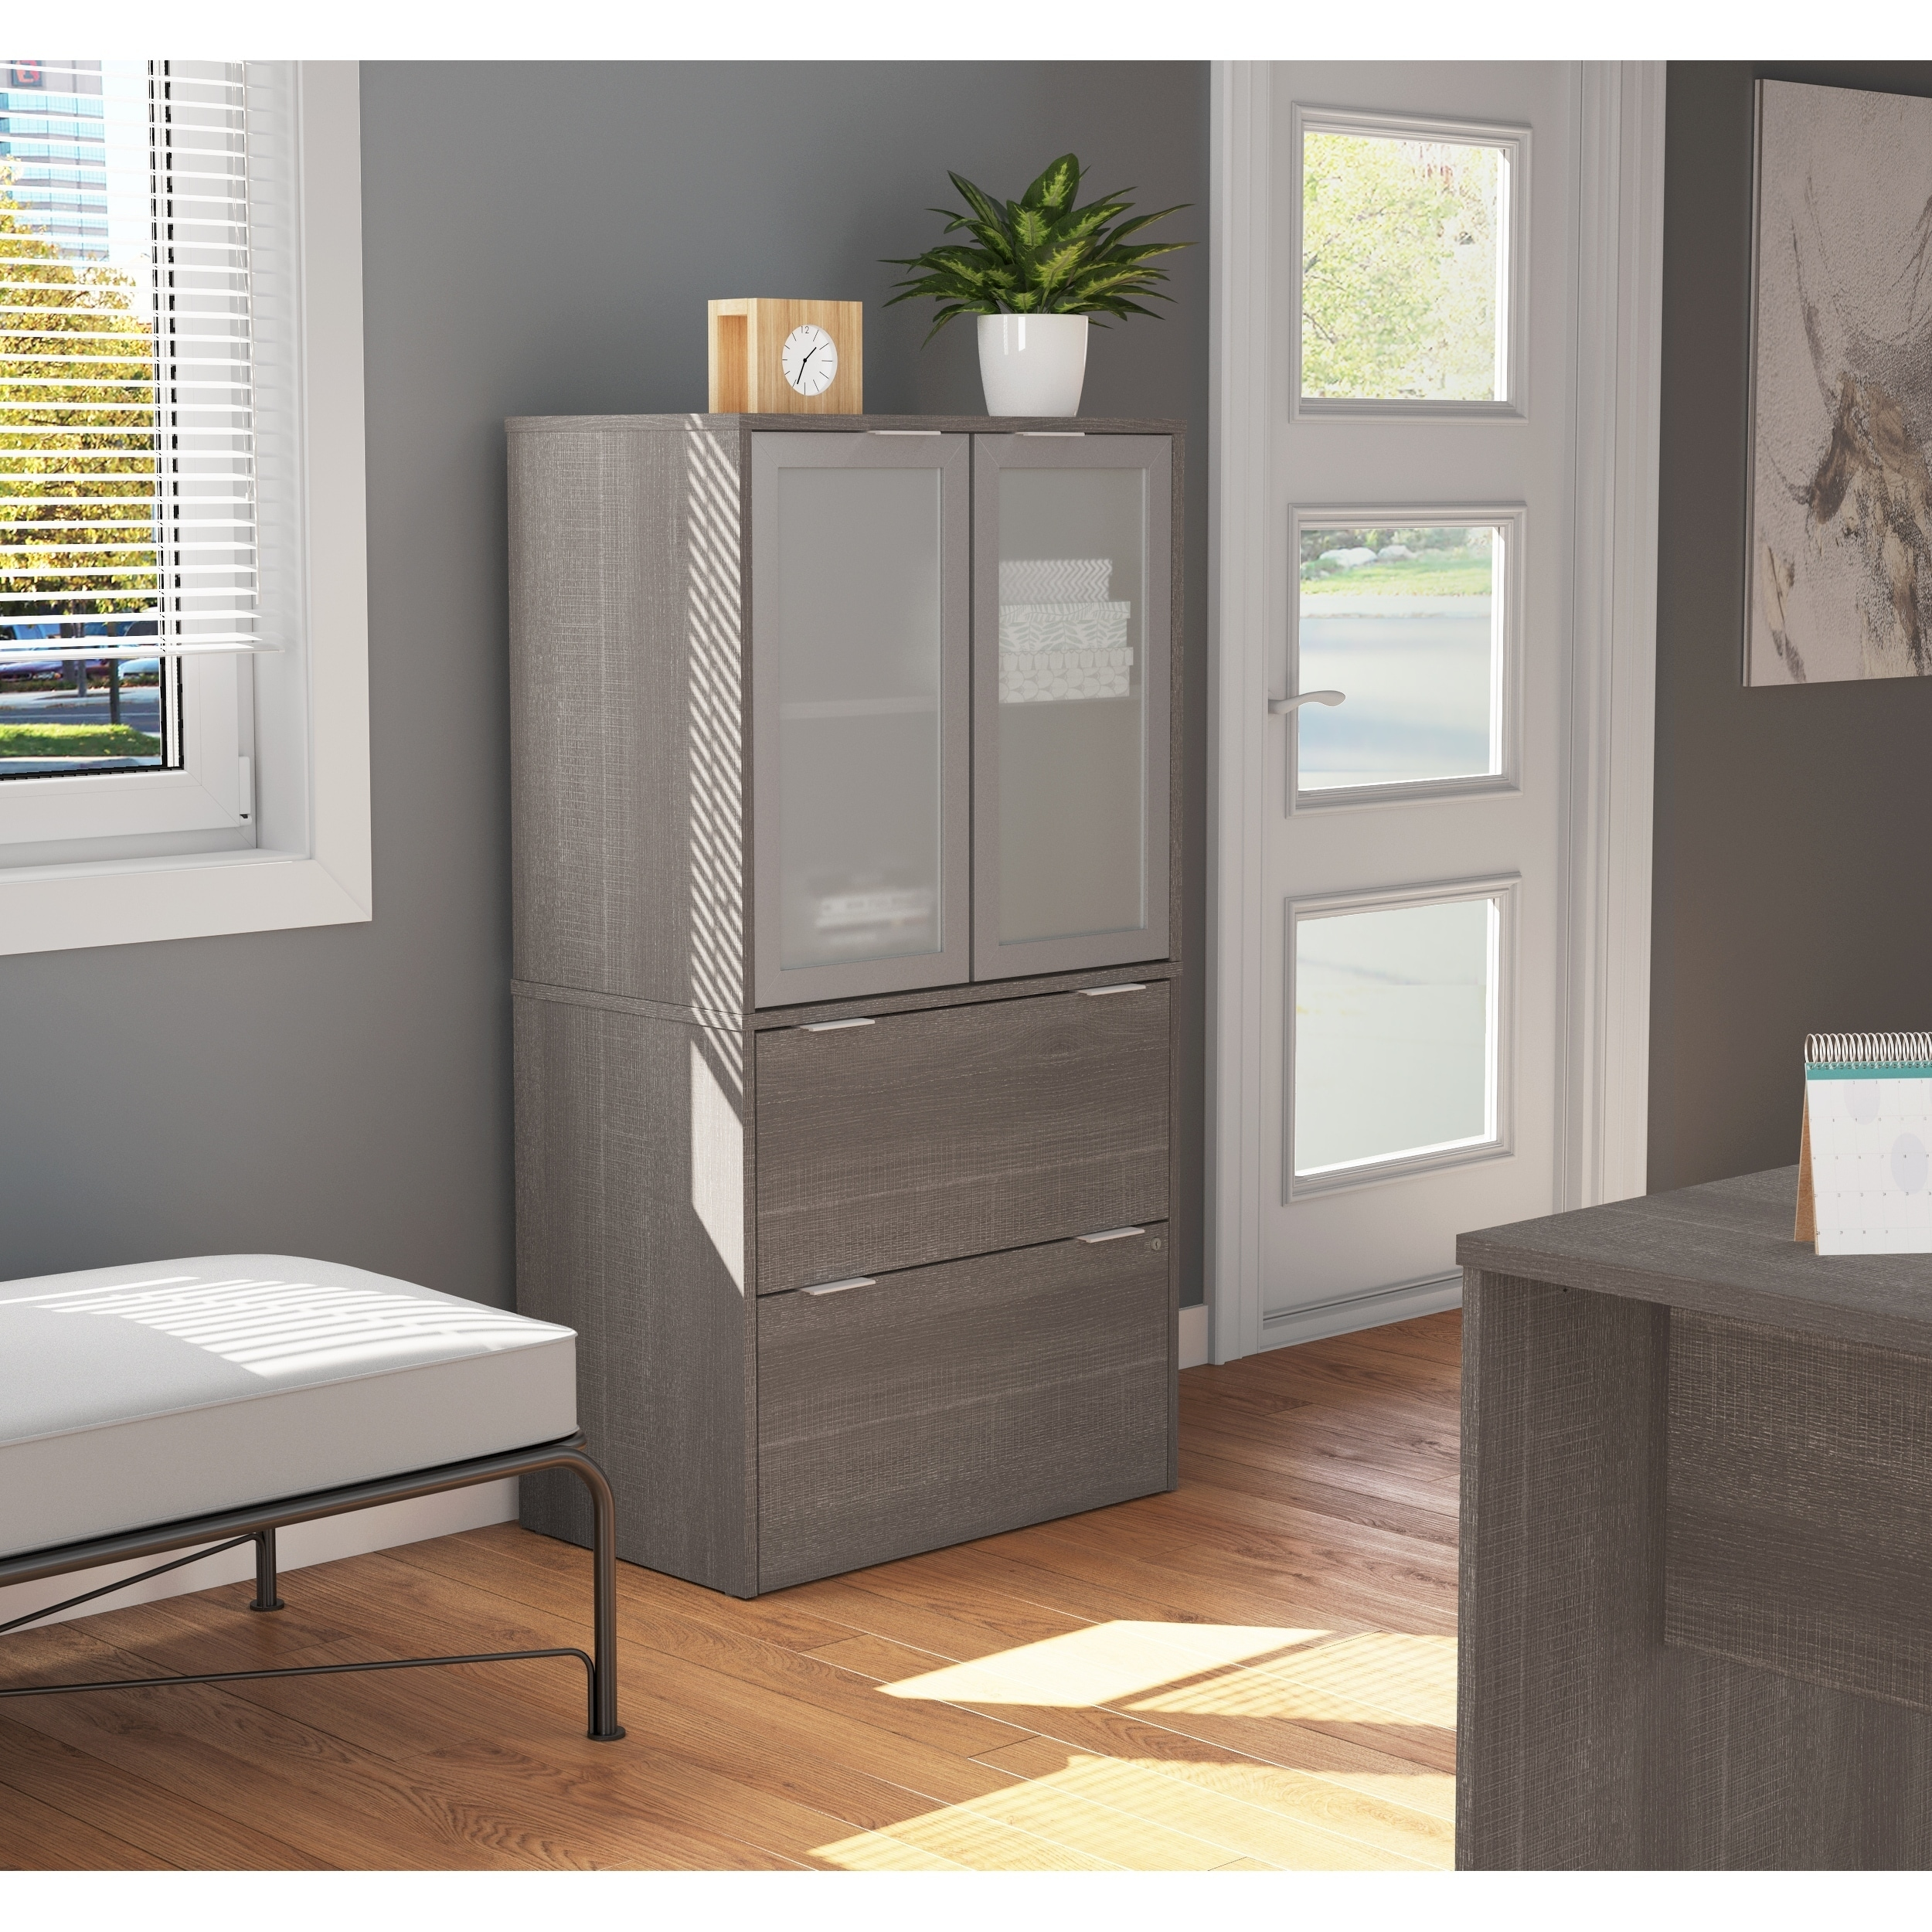 Shop Black Friday Deals On Bestar I3 Plus Lateral File With Storage Cabinet Overstock 19851975